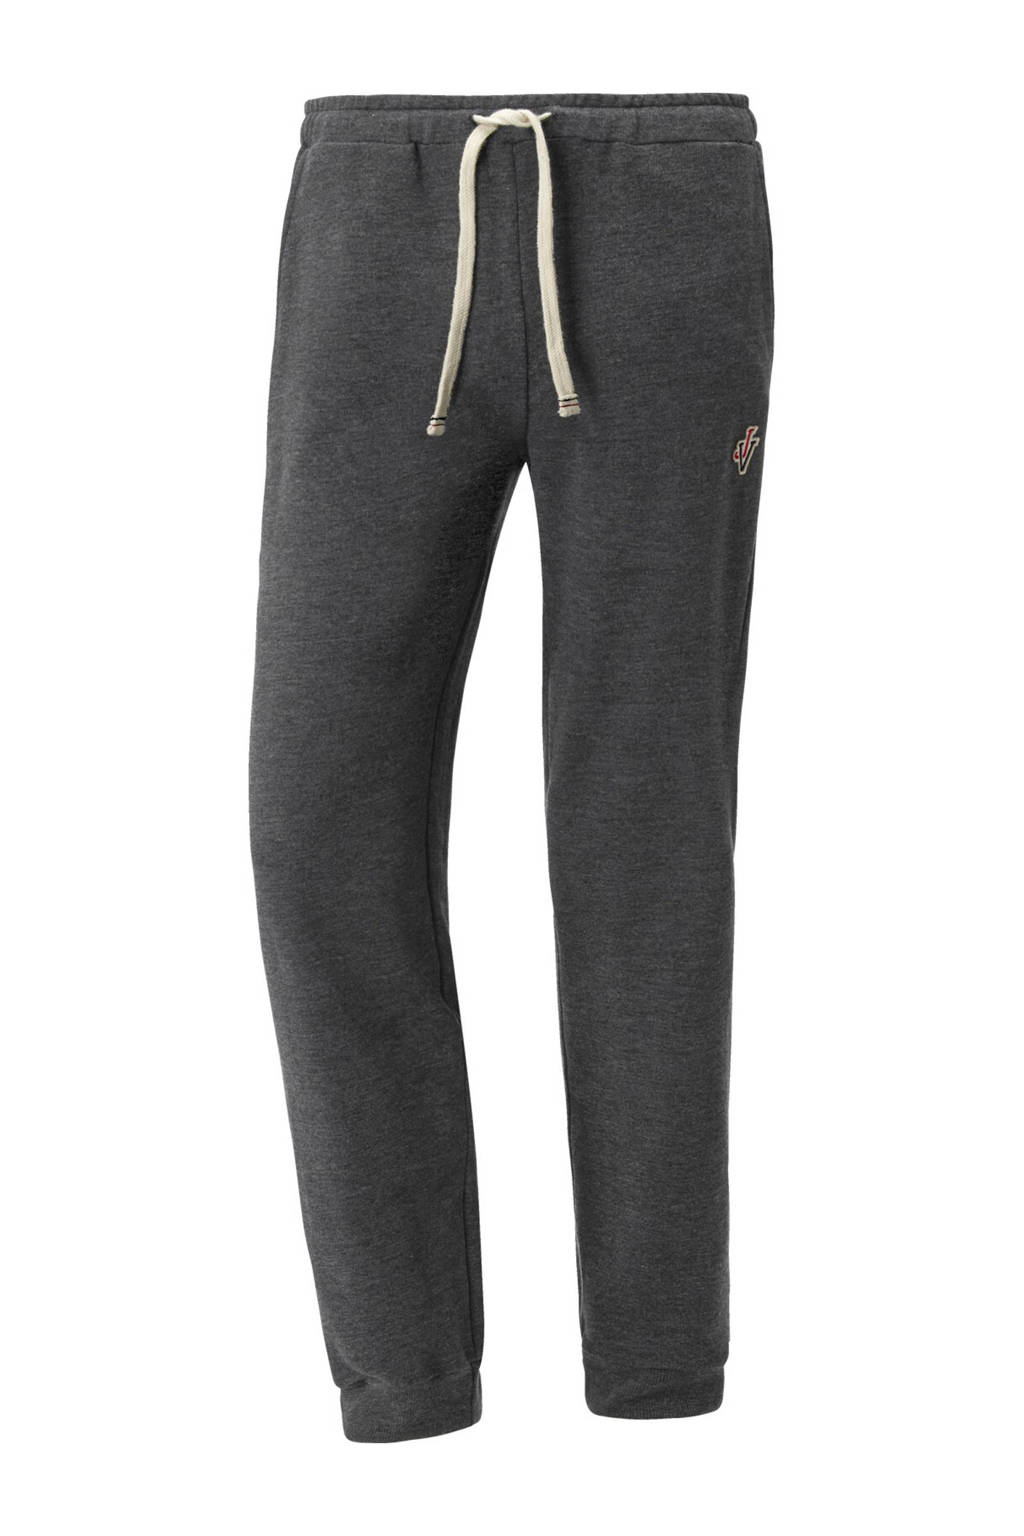 Jan Vanderstorm loose fit joggingbroek Plus Size EMORY grijs, Grijs